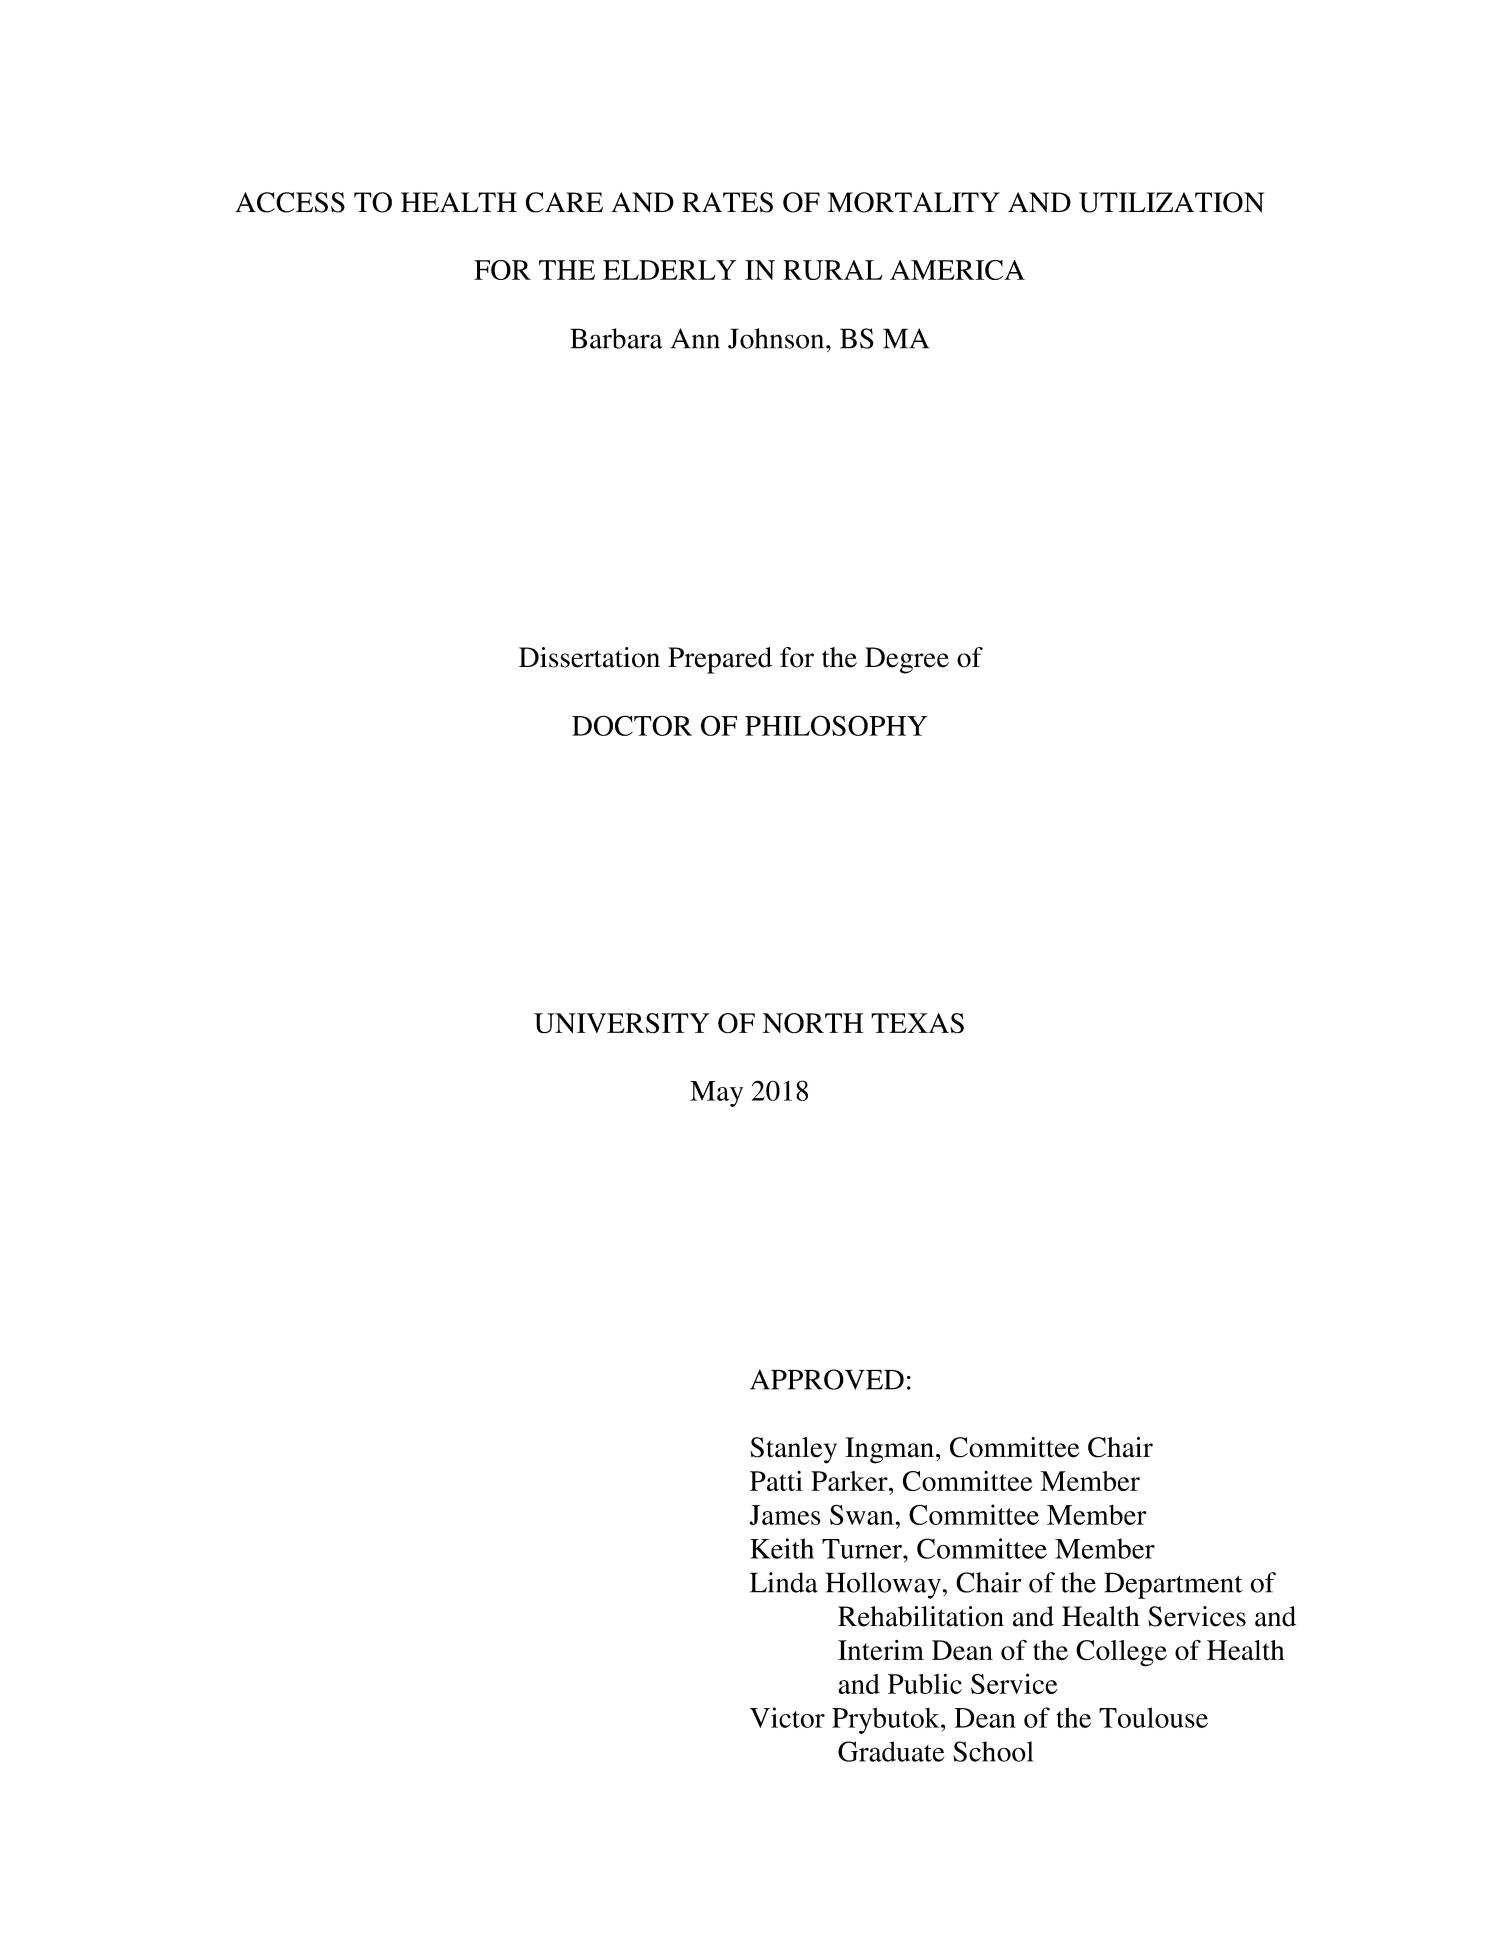 Dissertation of rural libraries